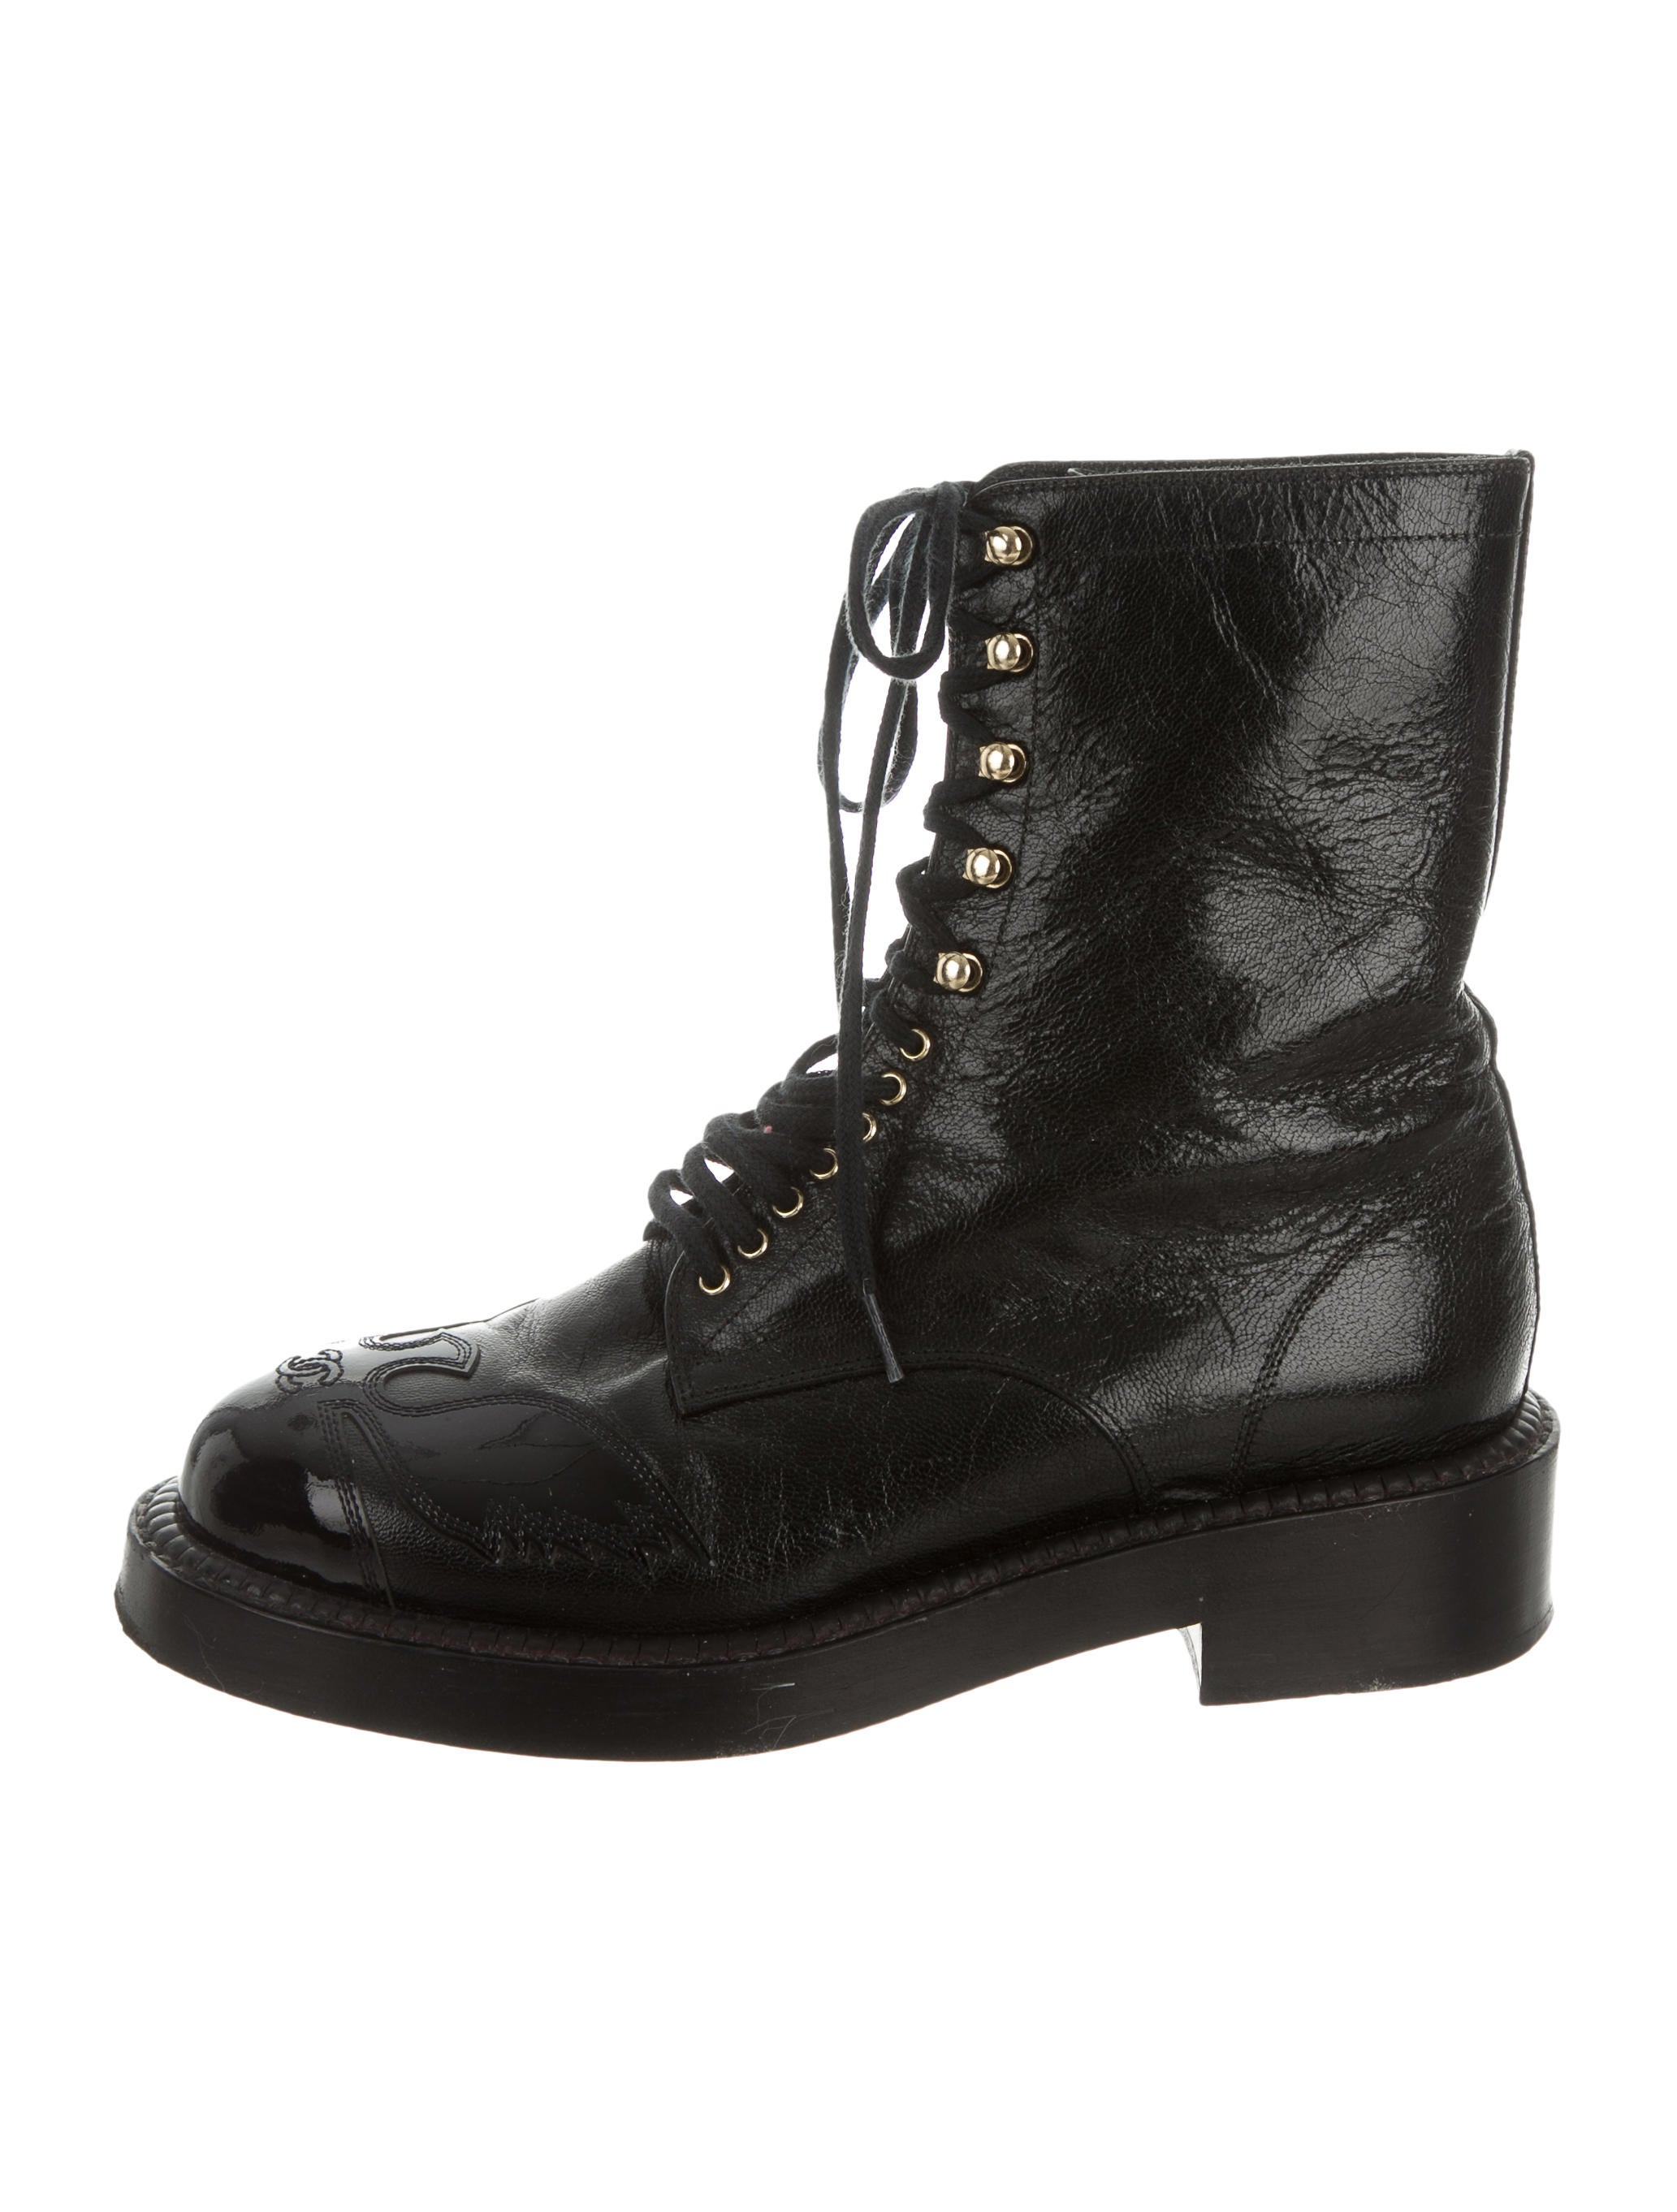 chanel leather lace up ankle boots shoes cha138434